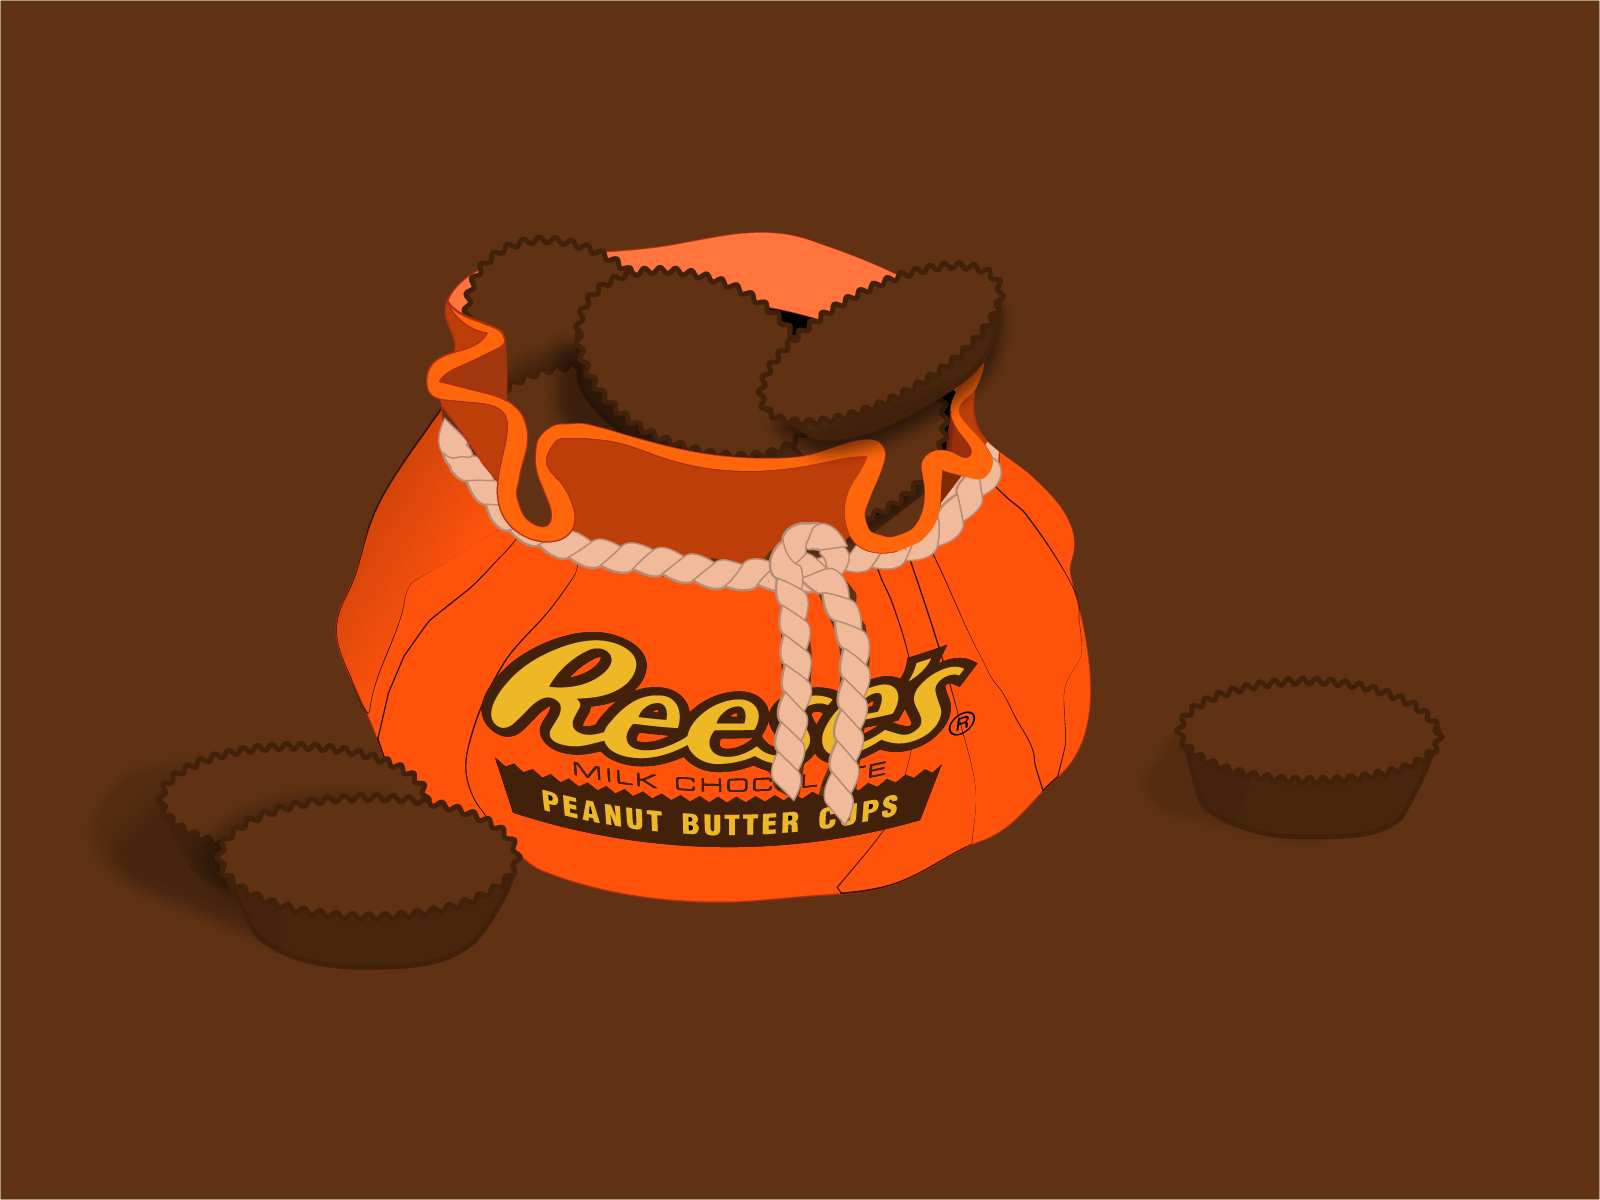 Reeses redesign